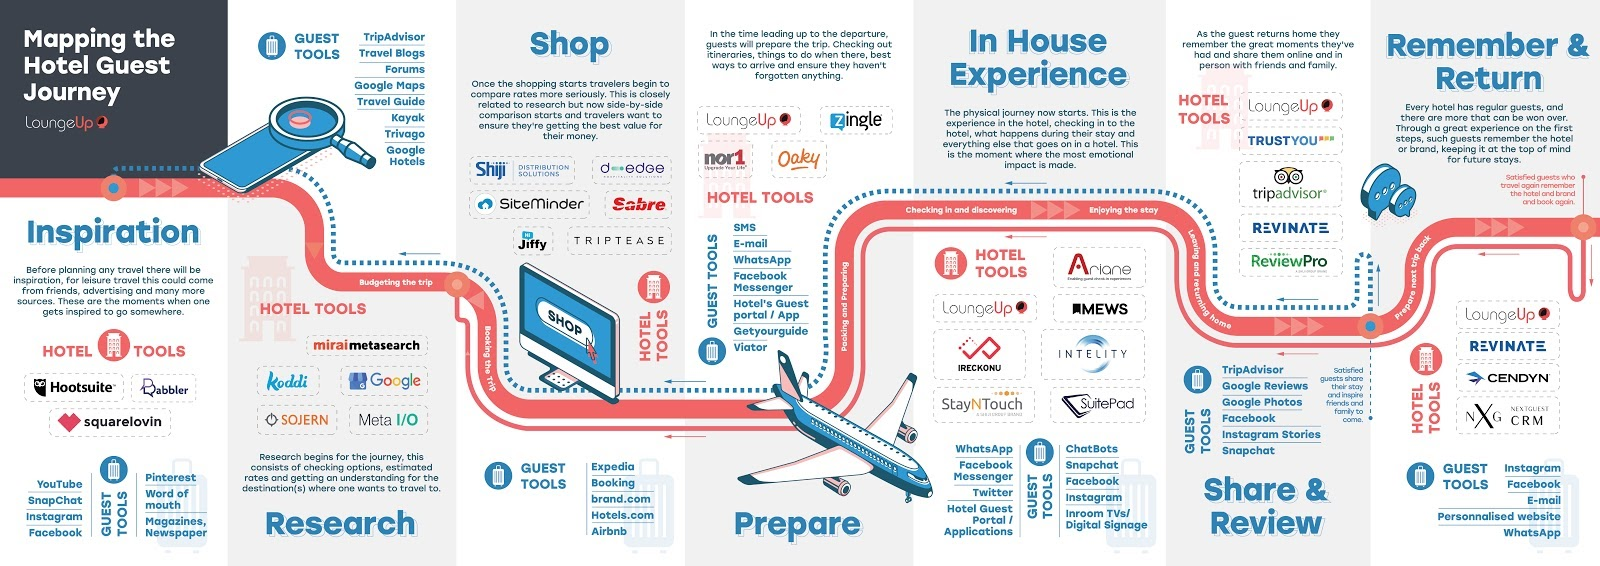 hotel guest journey map